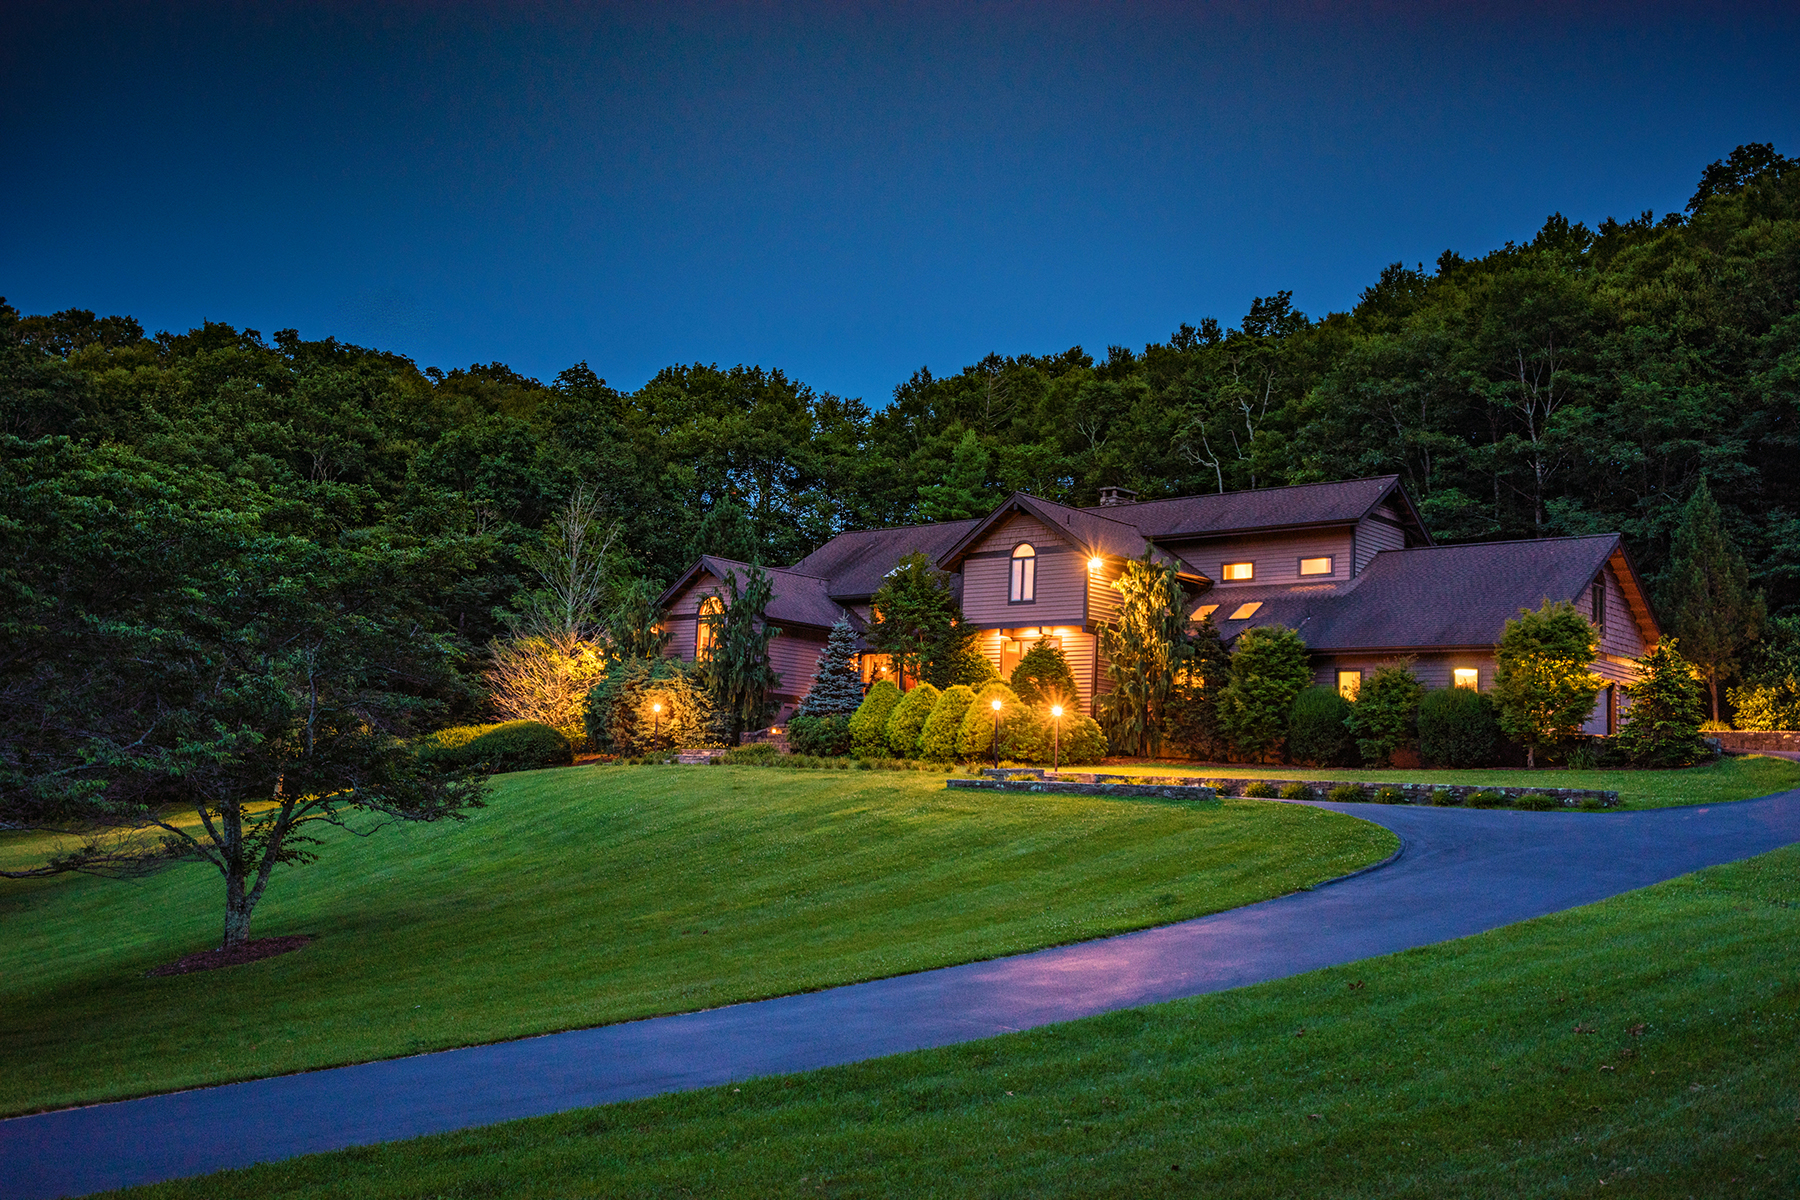 Single Family Home for Sale at BLOWING ROCK - LAUREL CHASE 251 Laurel Chase Blowing Rock, North Carolina, 28605 United States